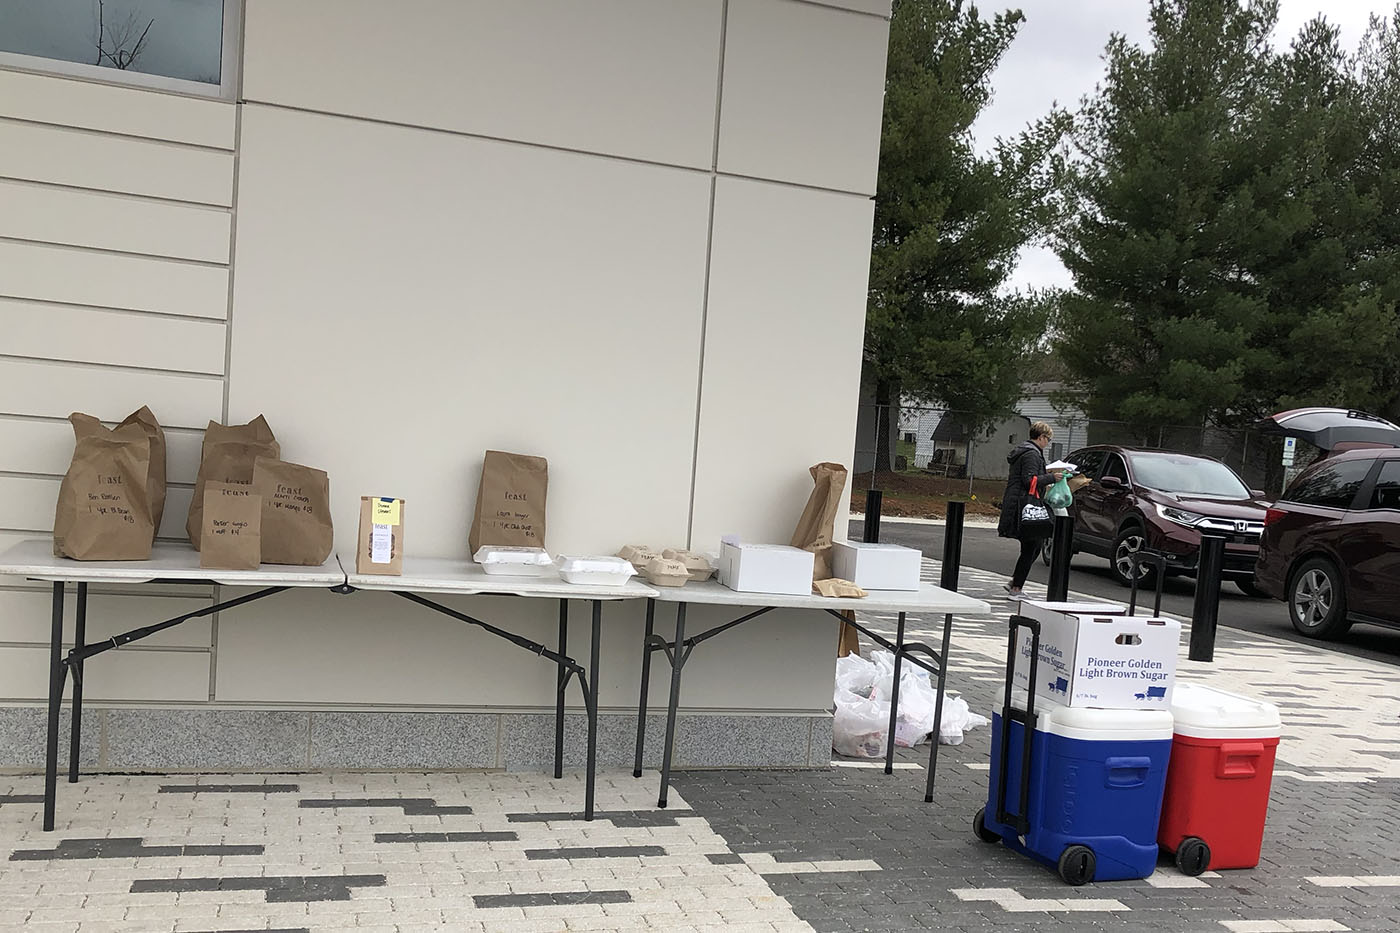 Bags and containers lined up on a table outside of a building, coolers and a person approaching a car with full bags.